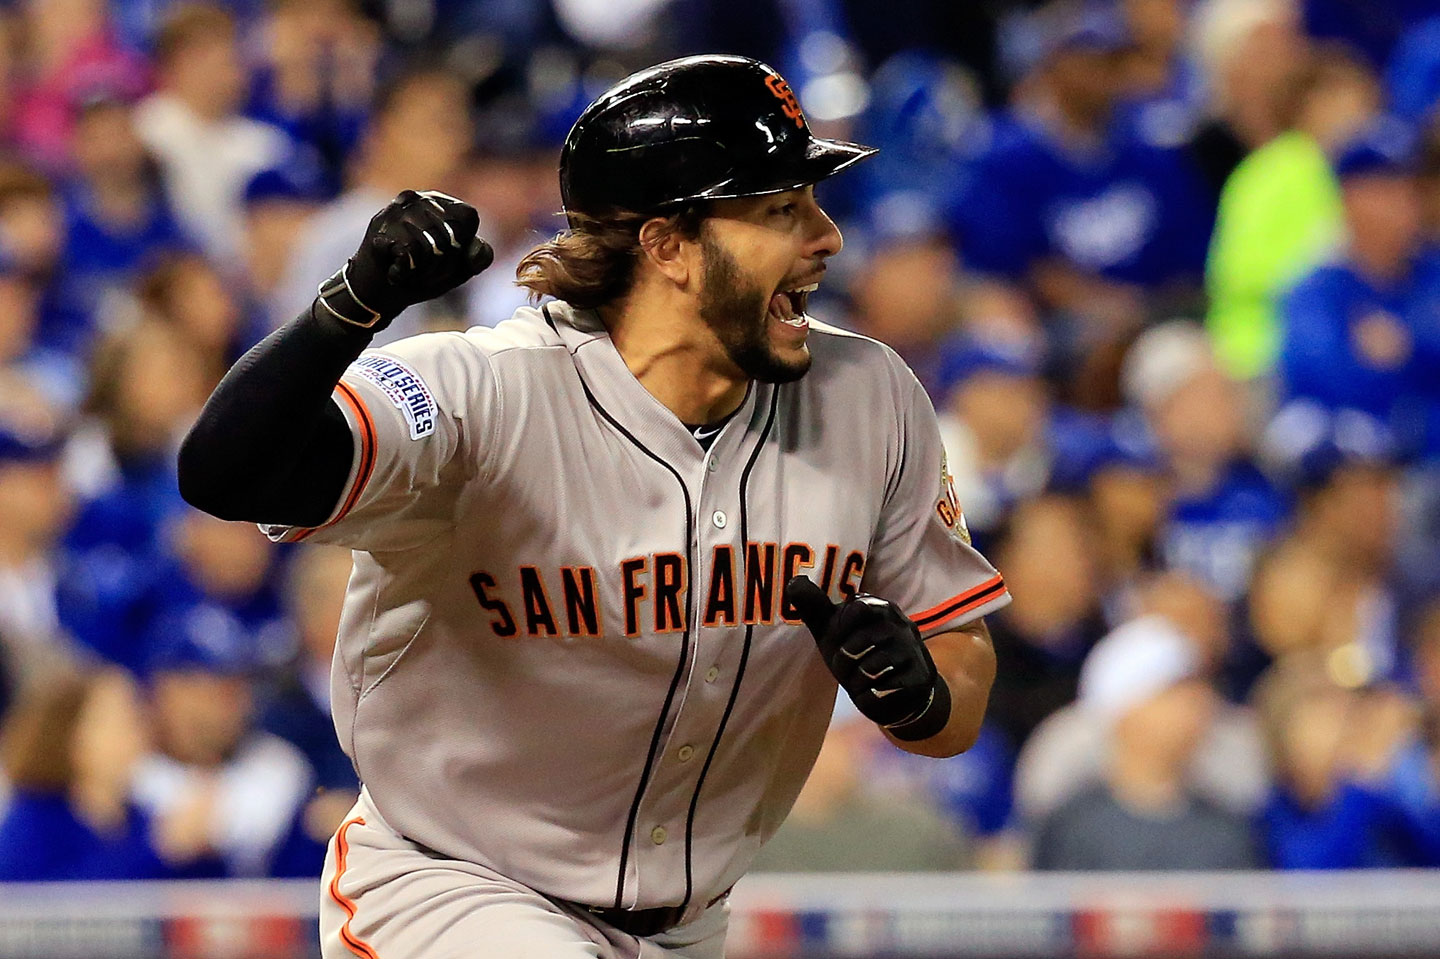 Michael Morse celebrates after hitting an RBI single in the fourth inning, allowing Hunter Pence to scamper home. (Rob Carr/Getty Images)